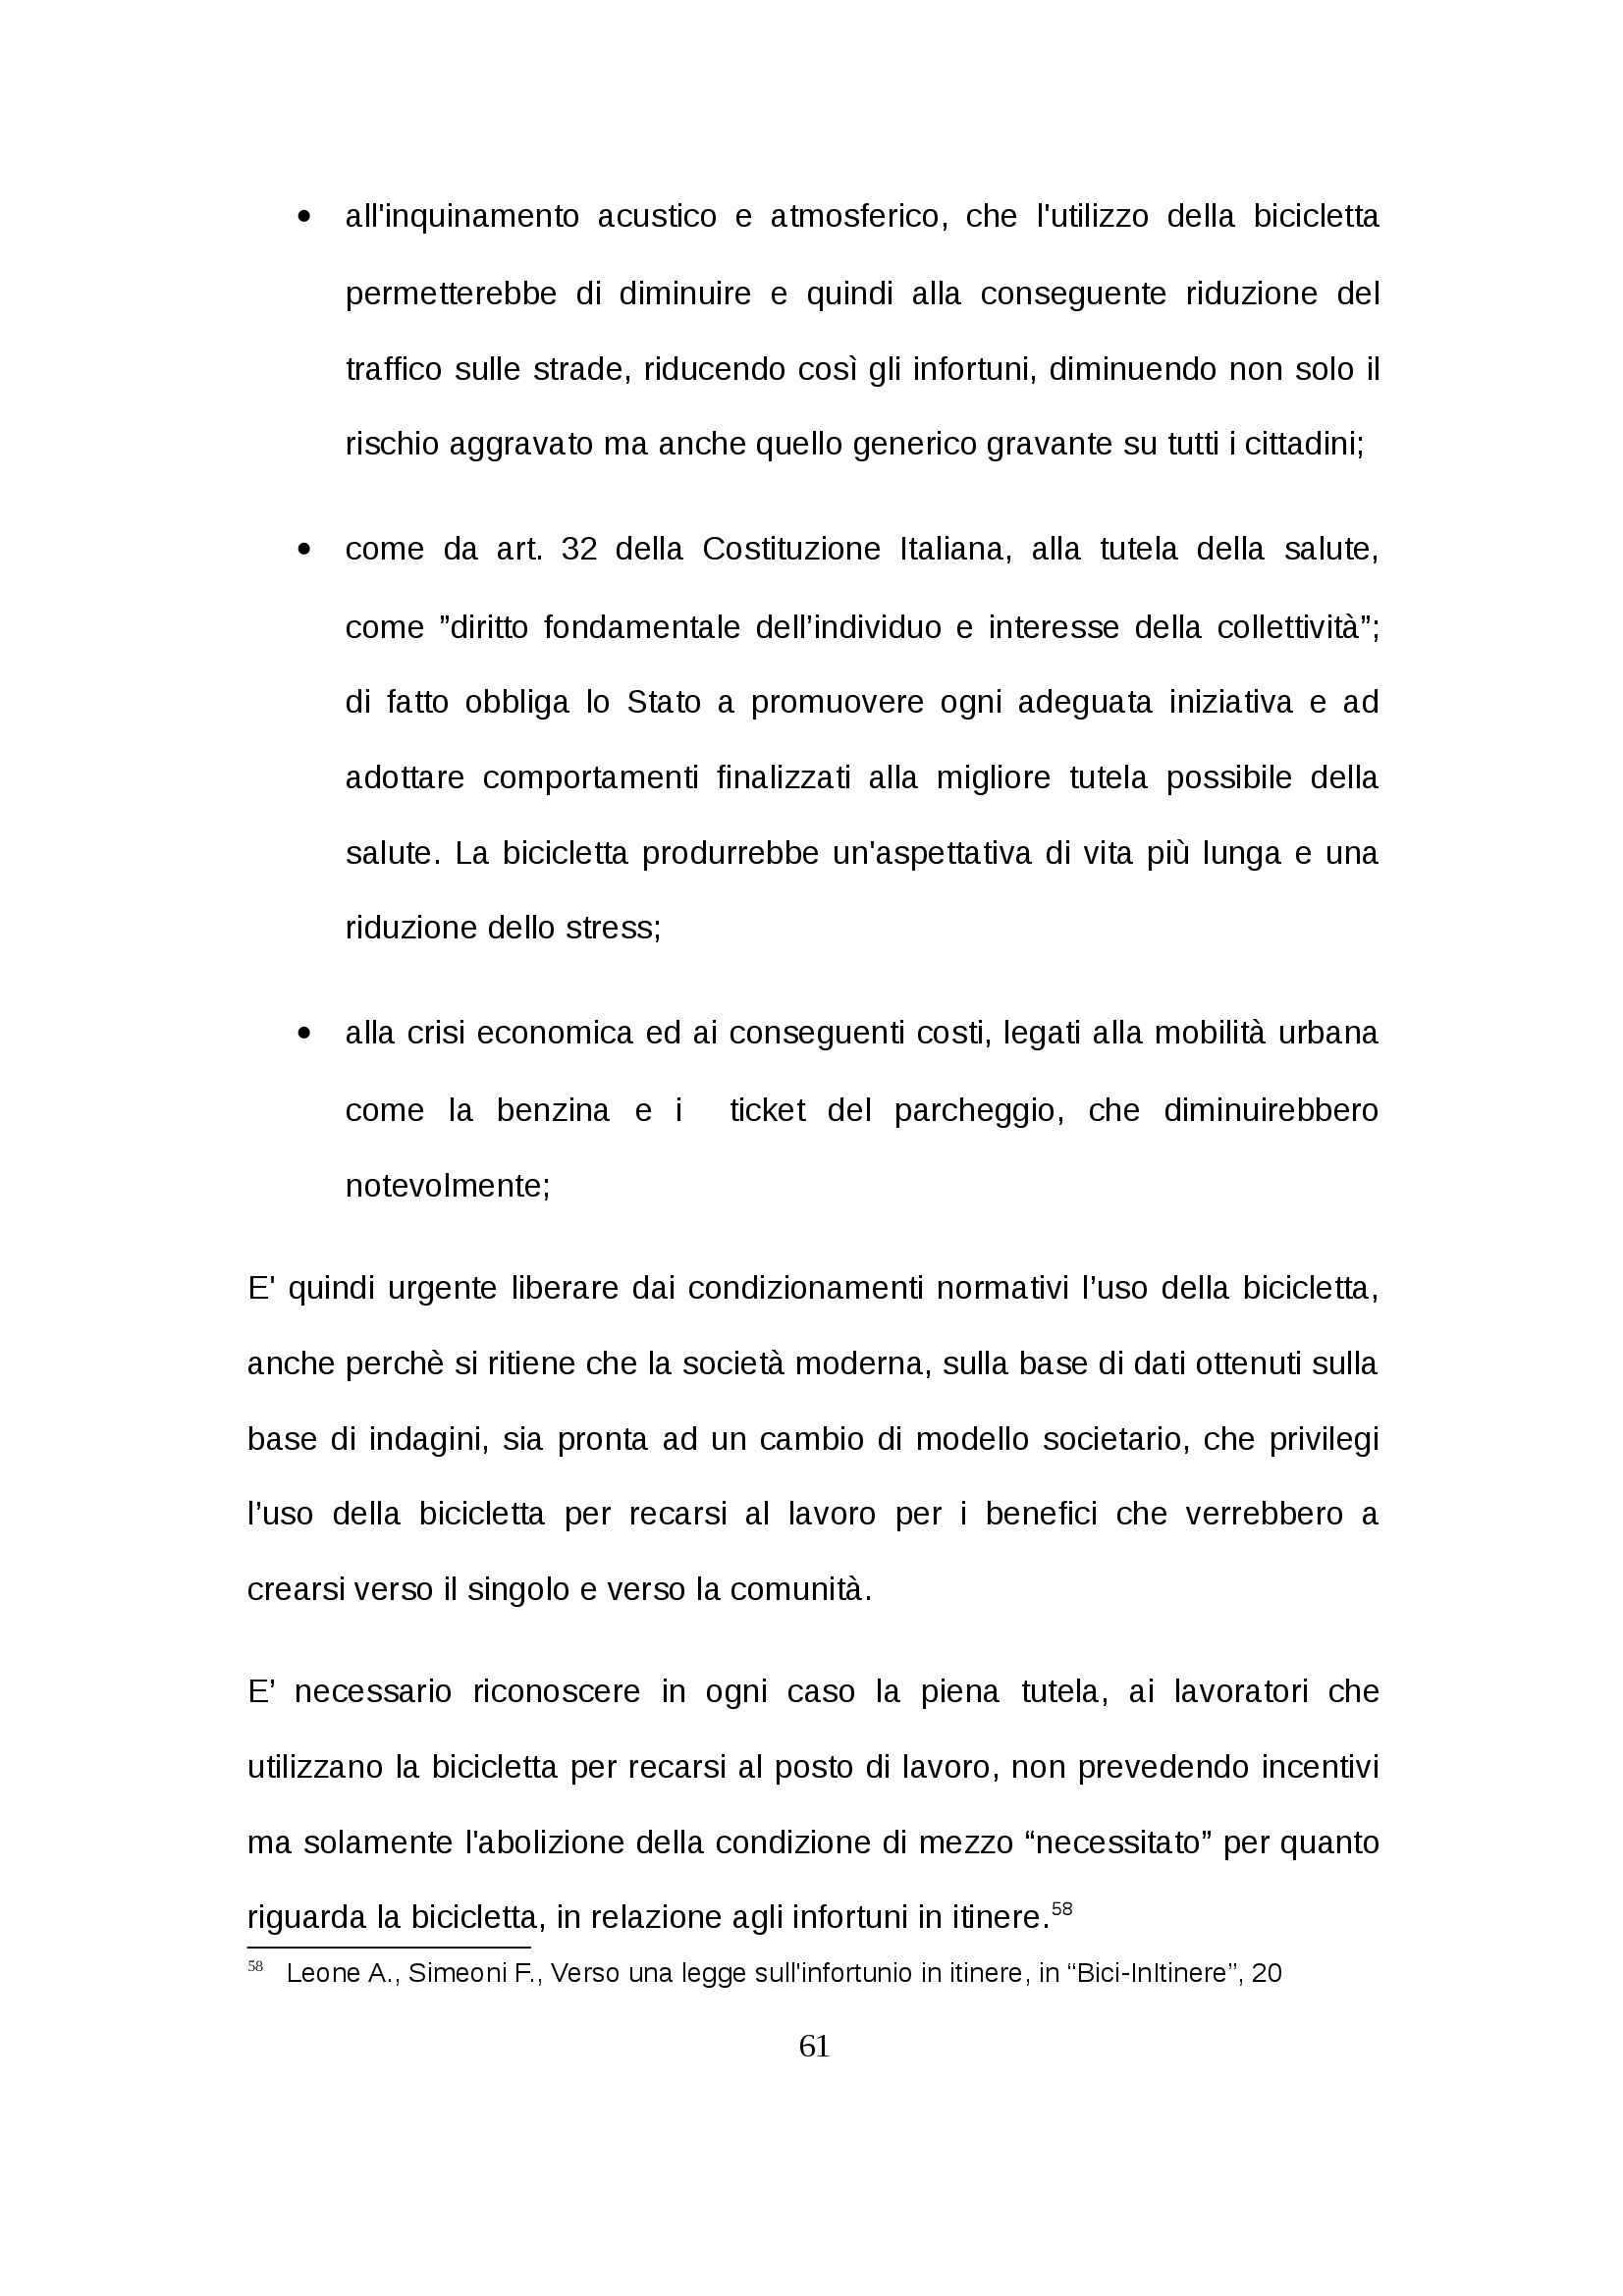 Tesi - Infortunio in itinere Pag. 61